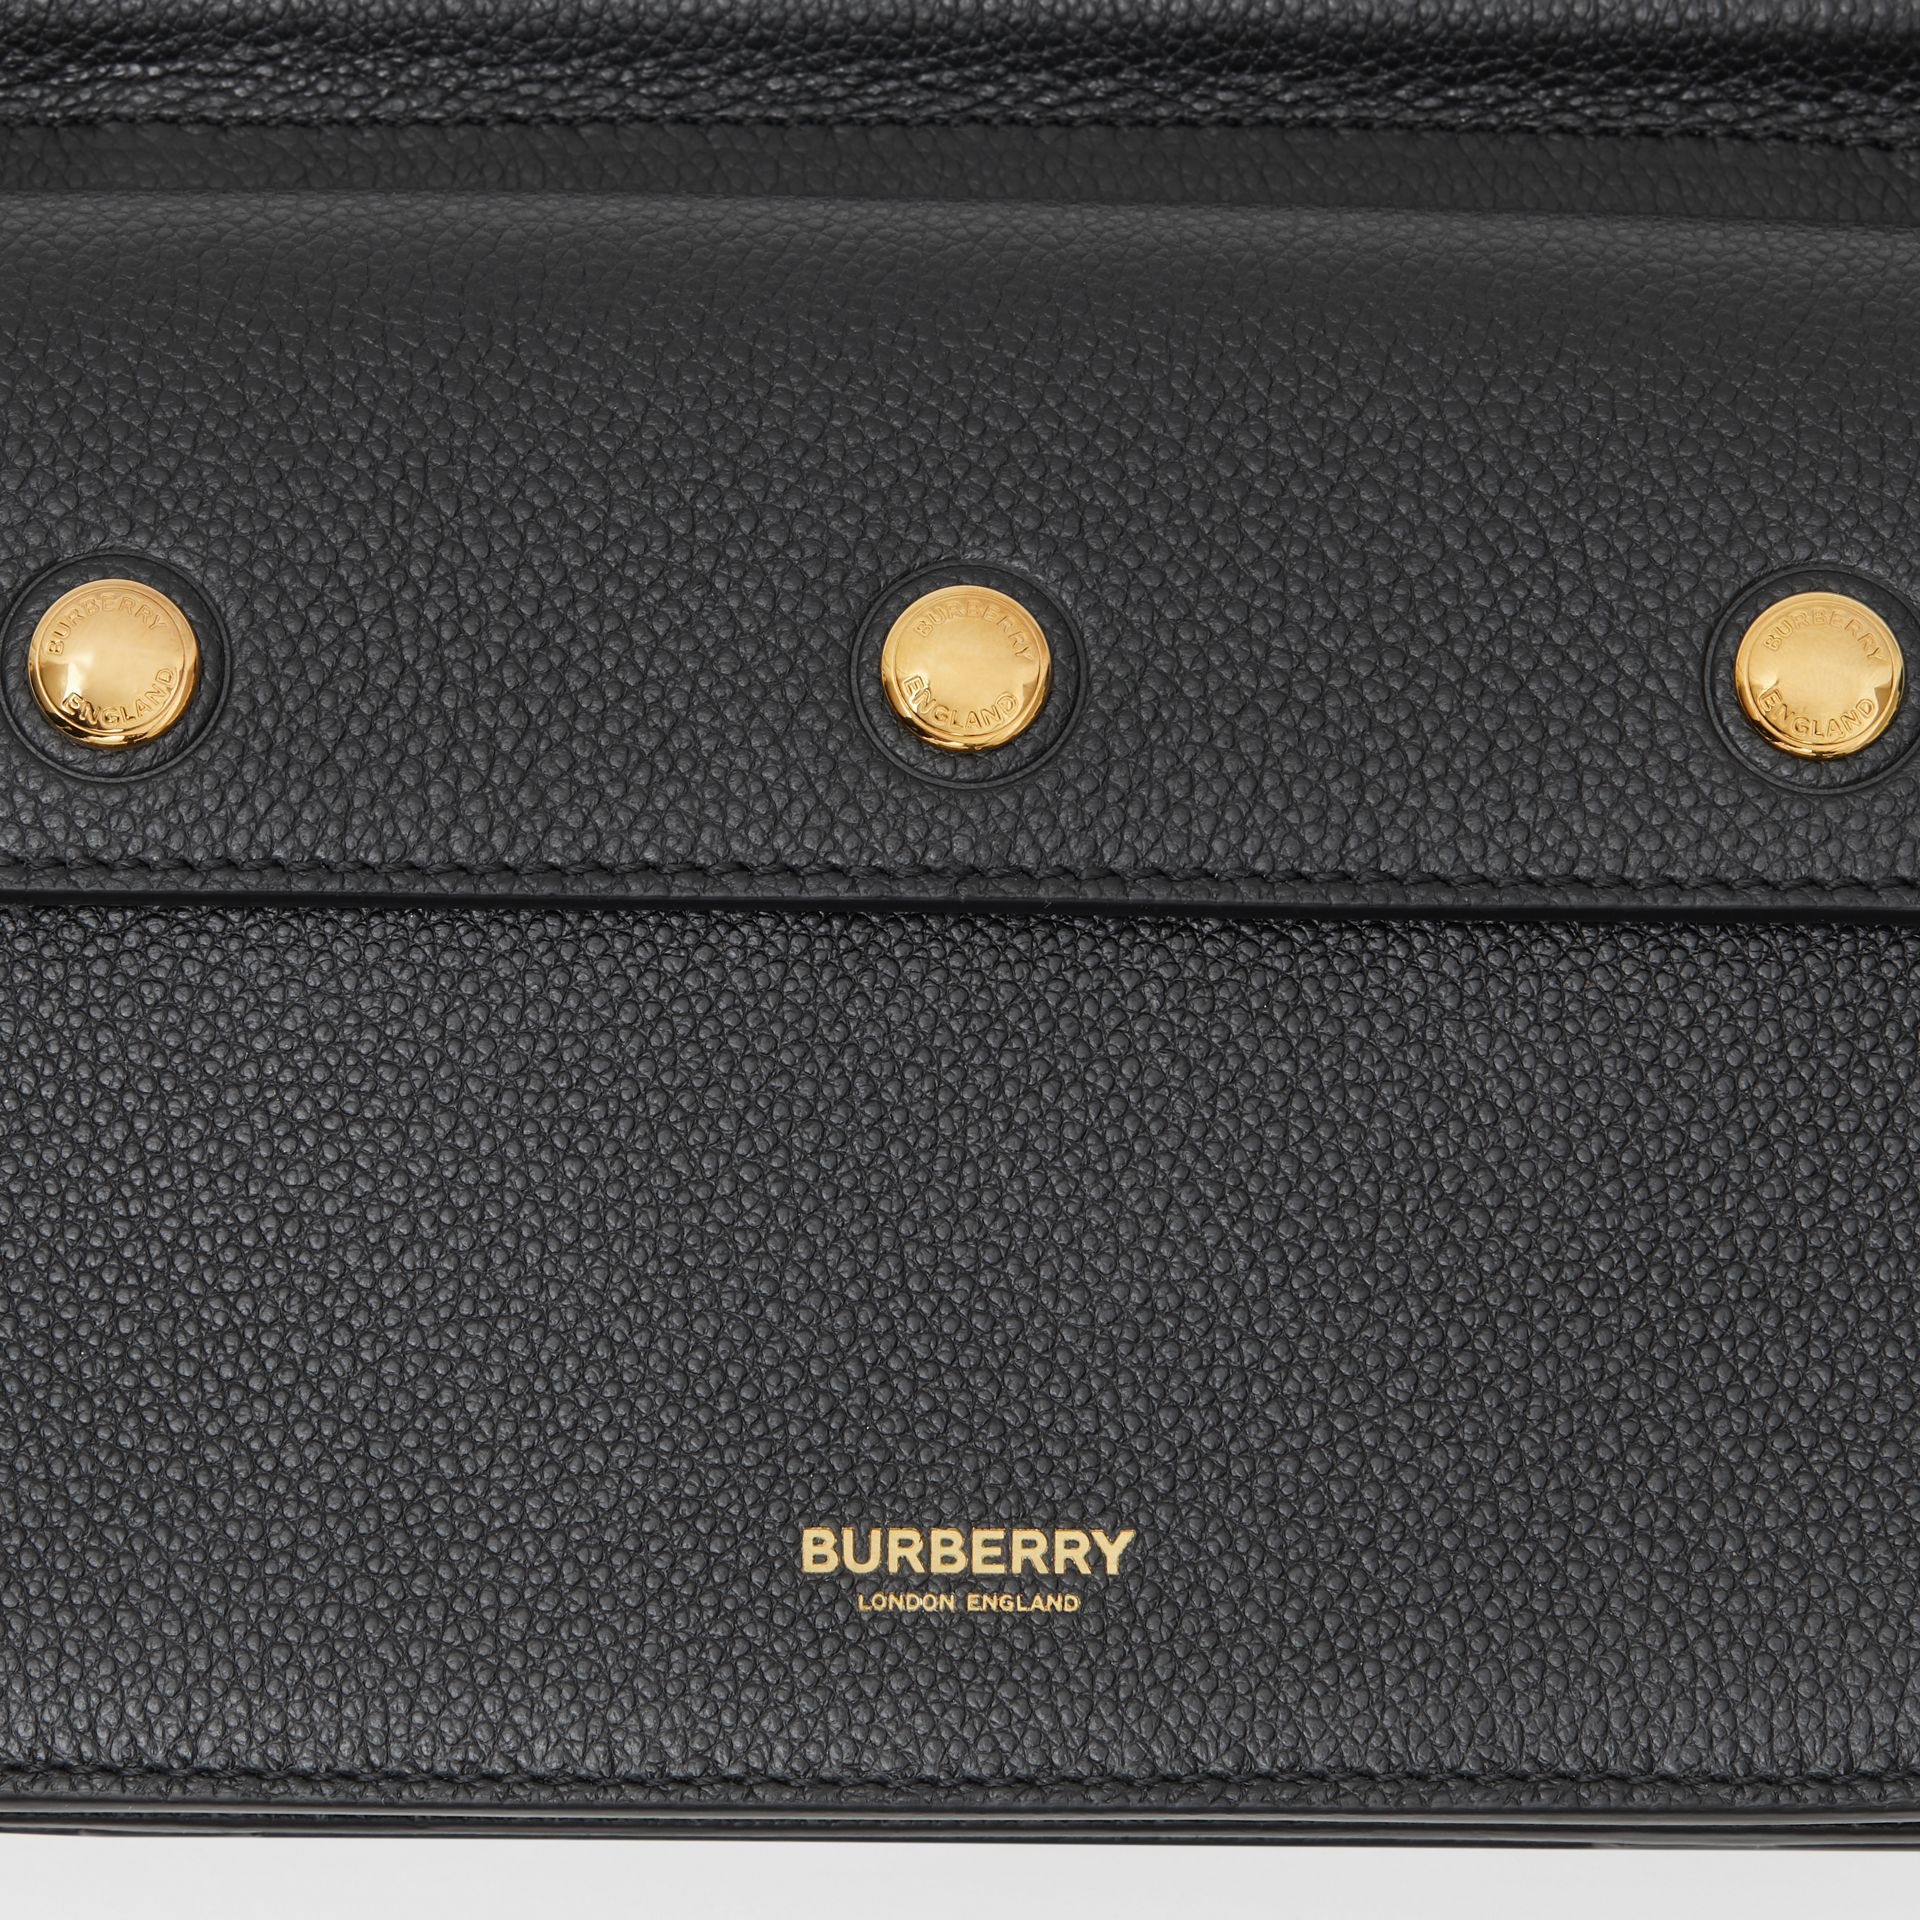 Mini Leather Title Bag with Pocket Detail in Black - Women | Burberry - gallery image 8